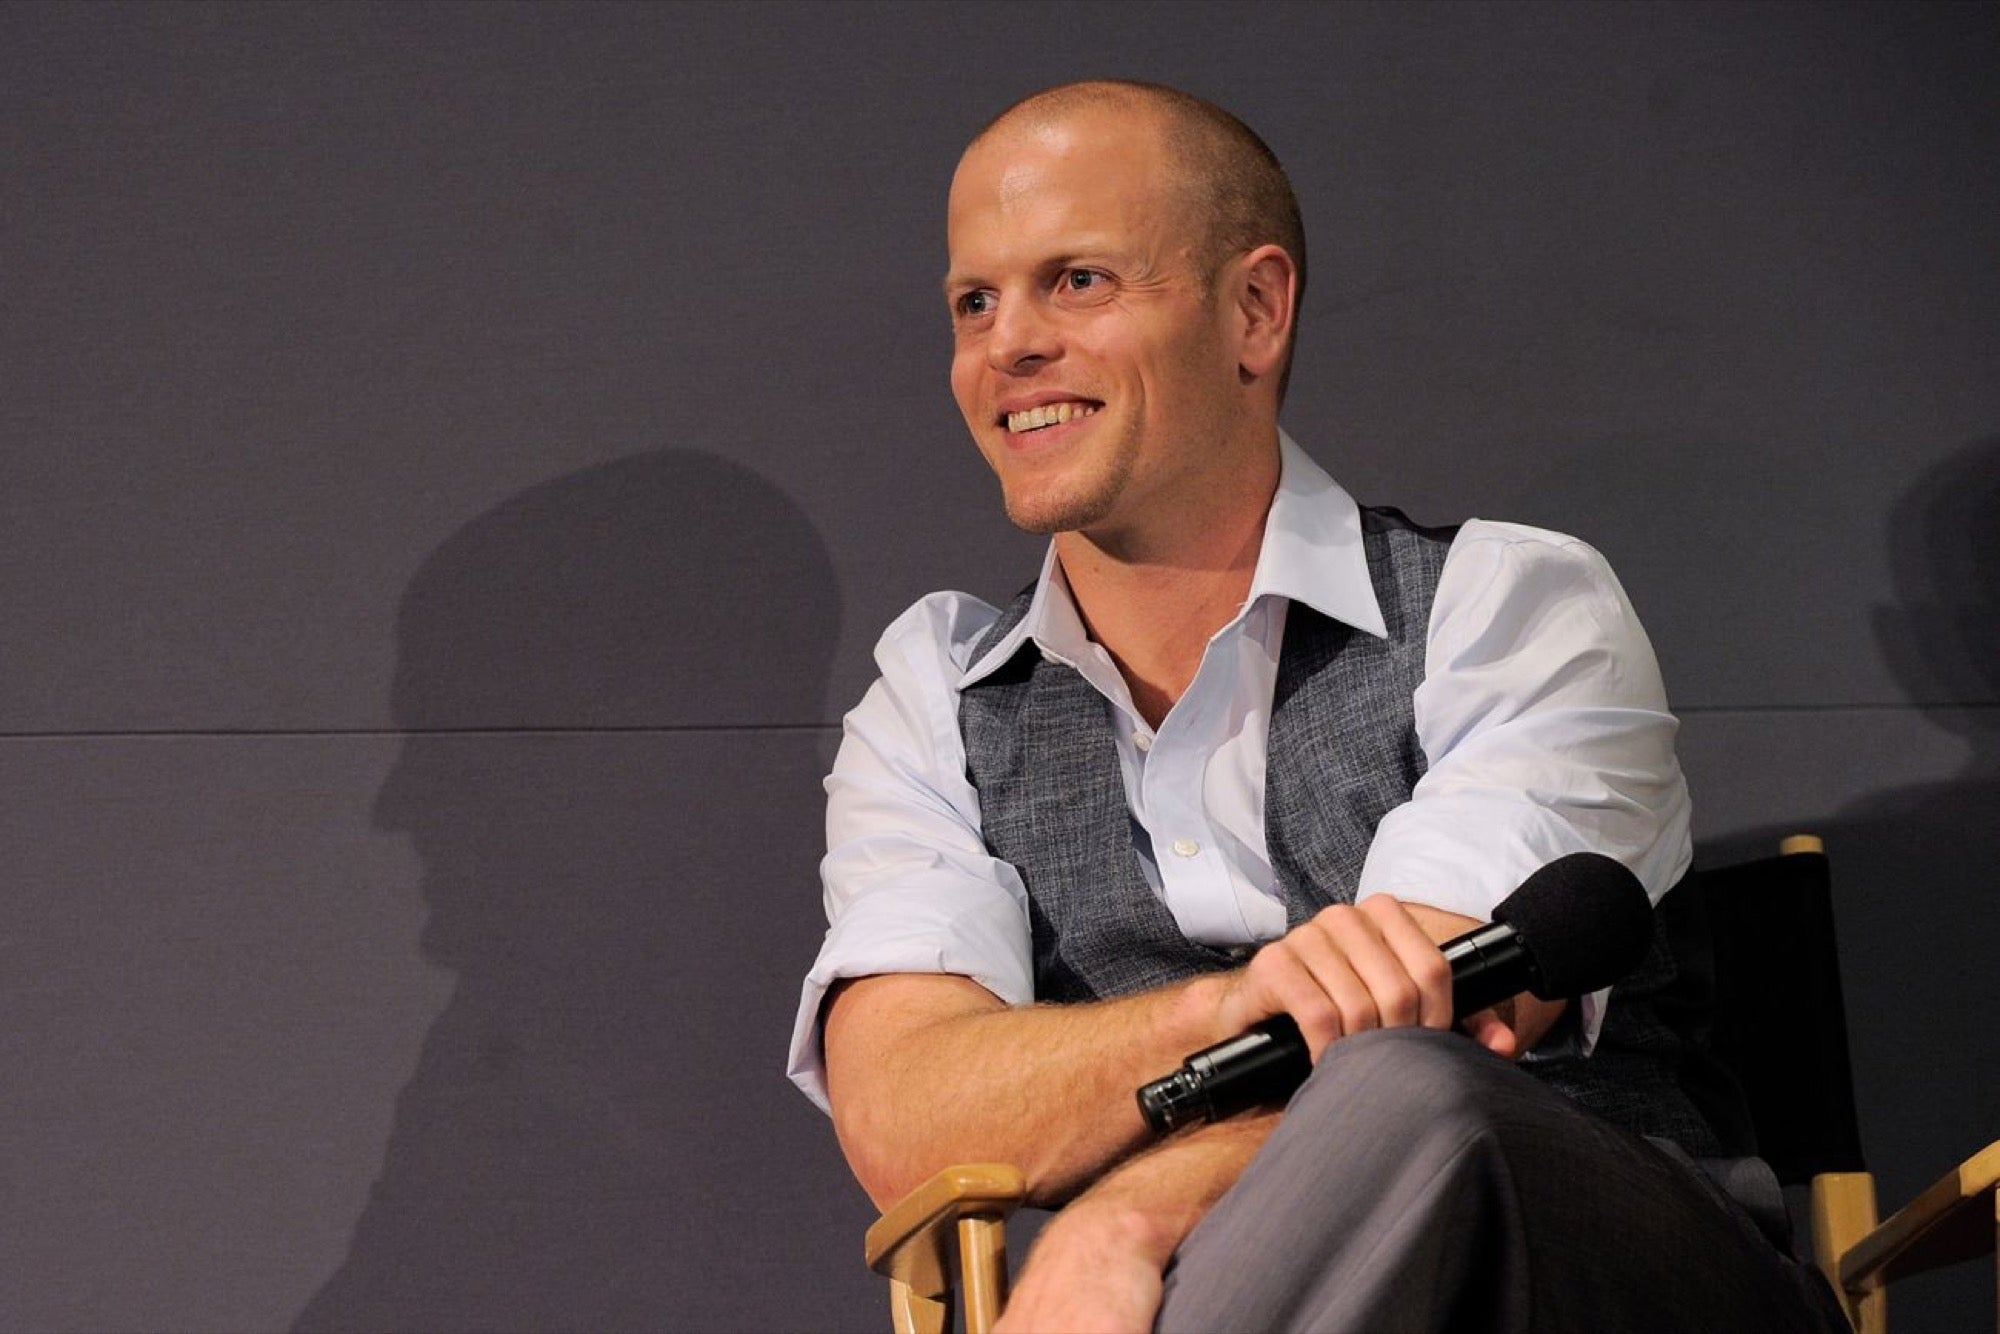 Tim ferriss investments foreign investment in india ppt template